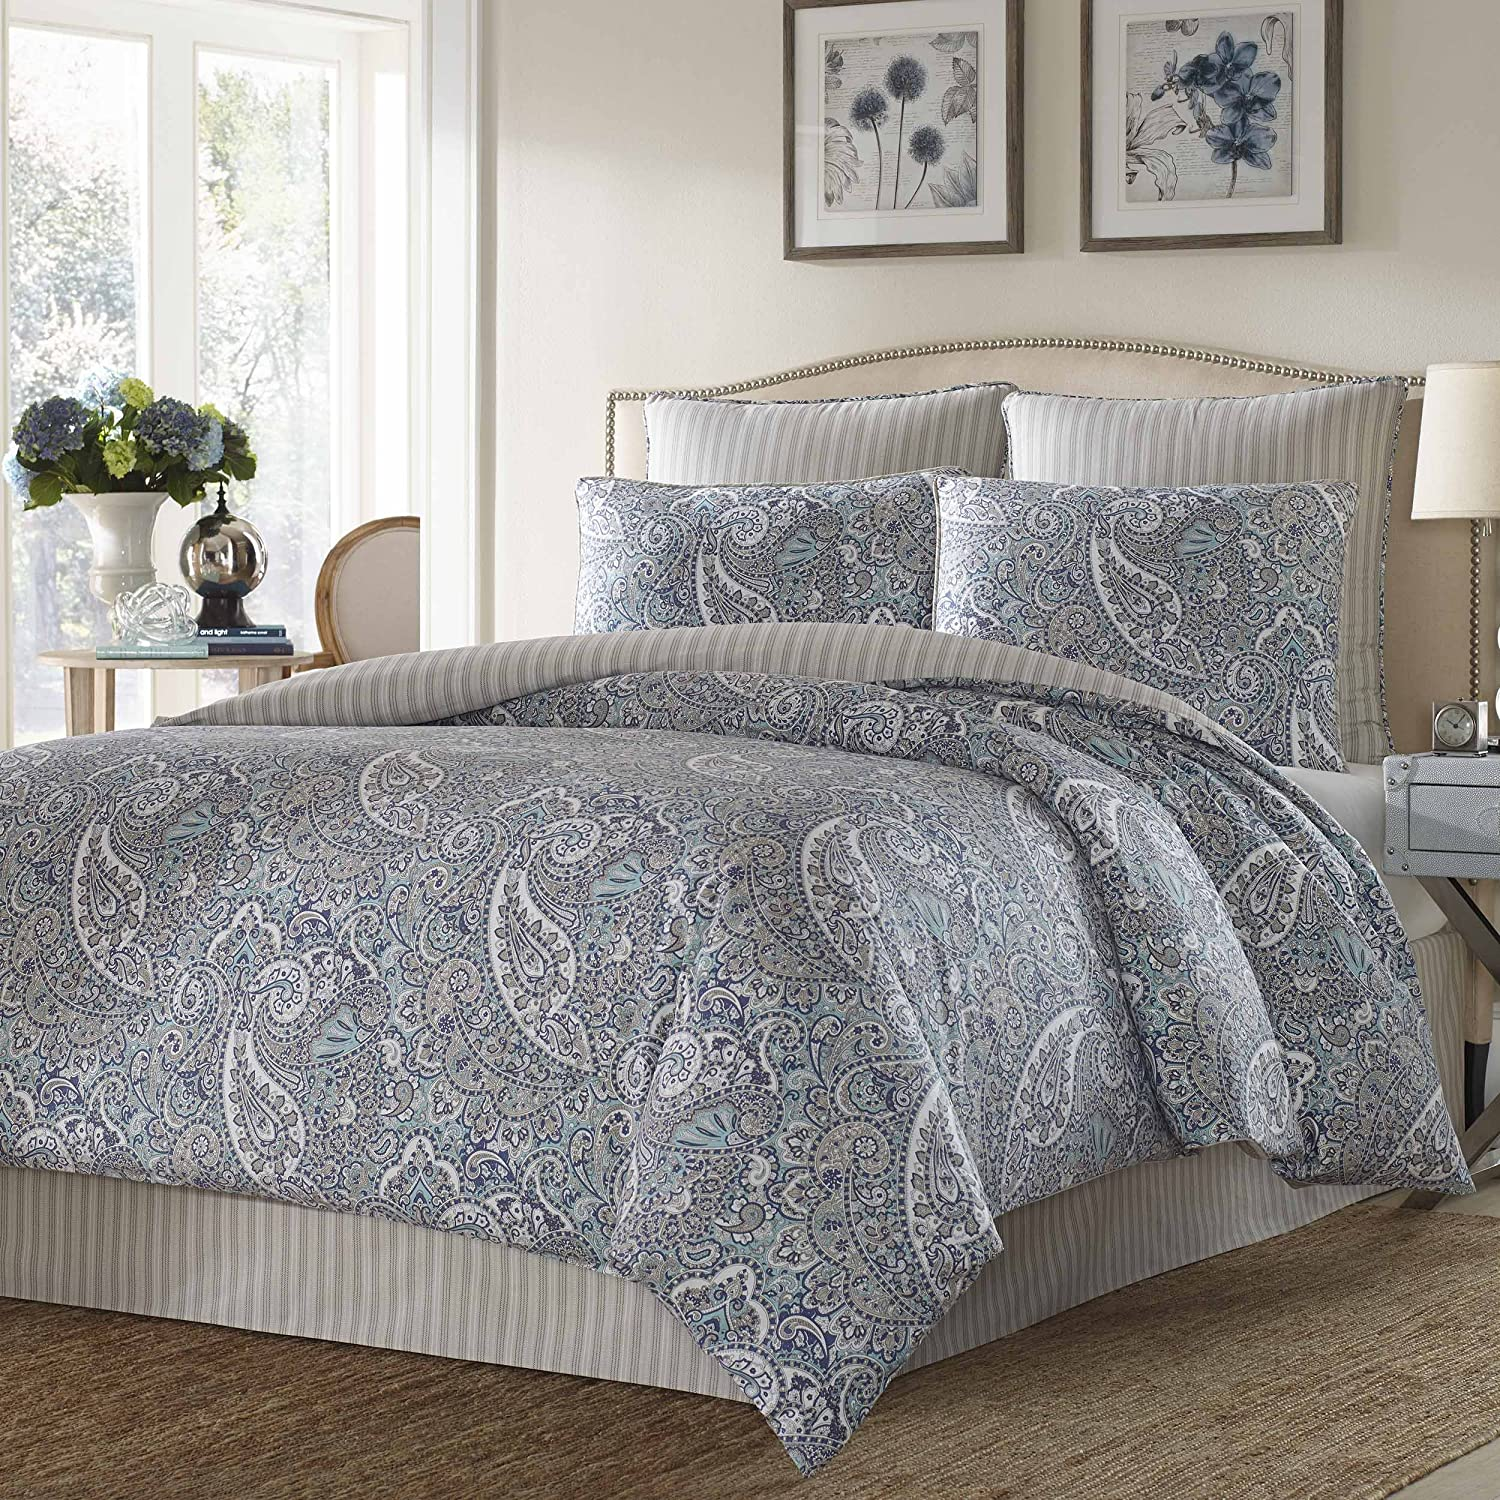 treasures product king living biolan qvc set comforter scott sateen or piece com page